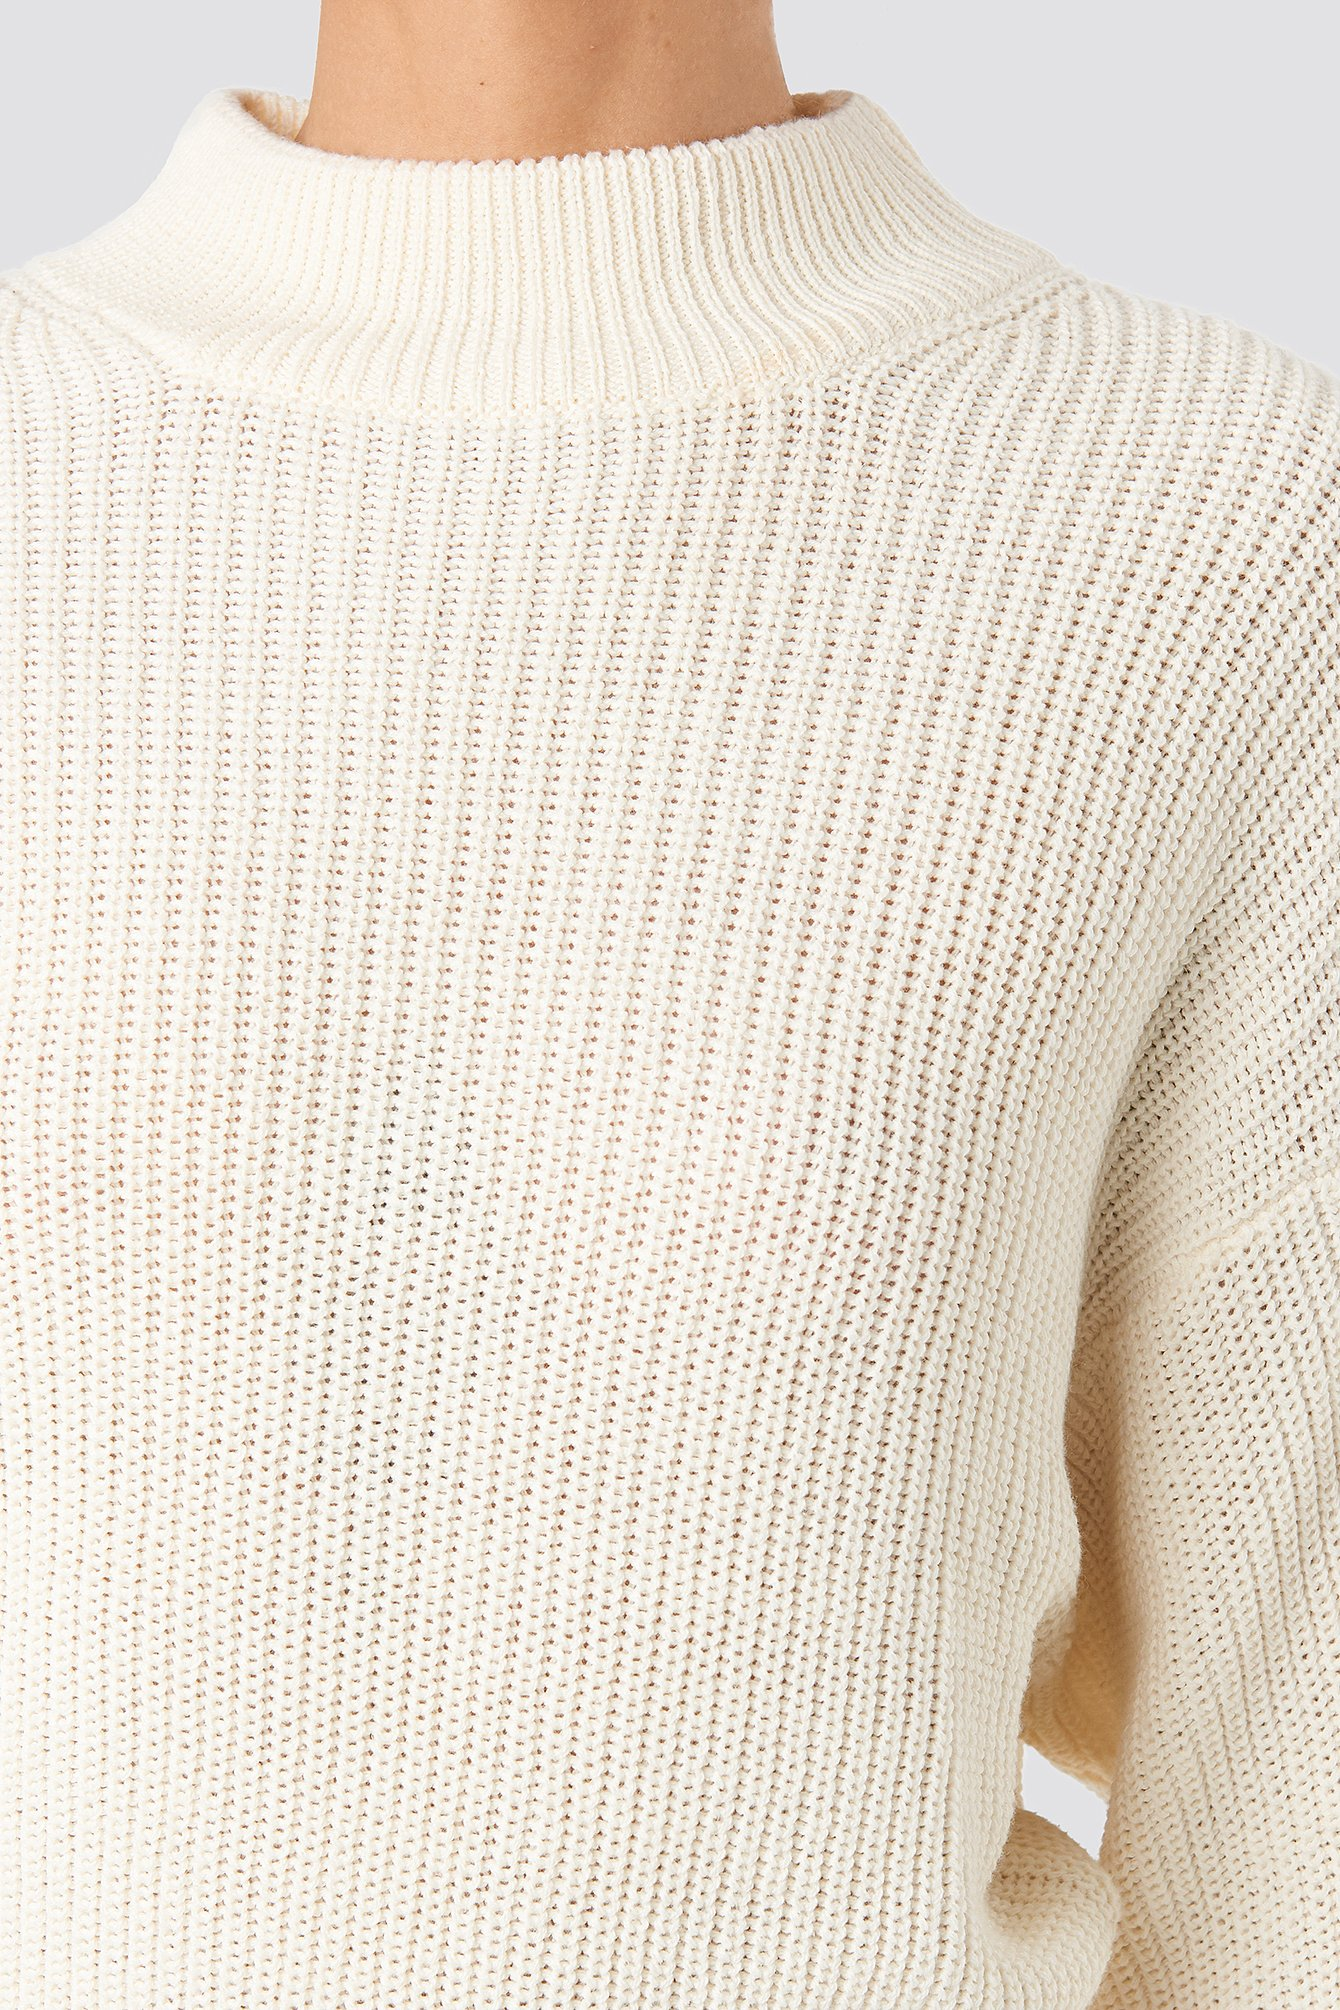 Offwhite Volume Sleeve High Neck Knitted Sweater